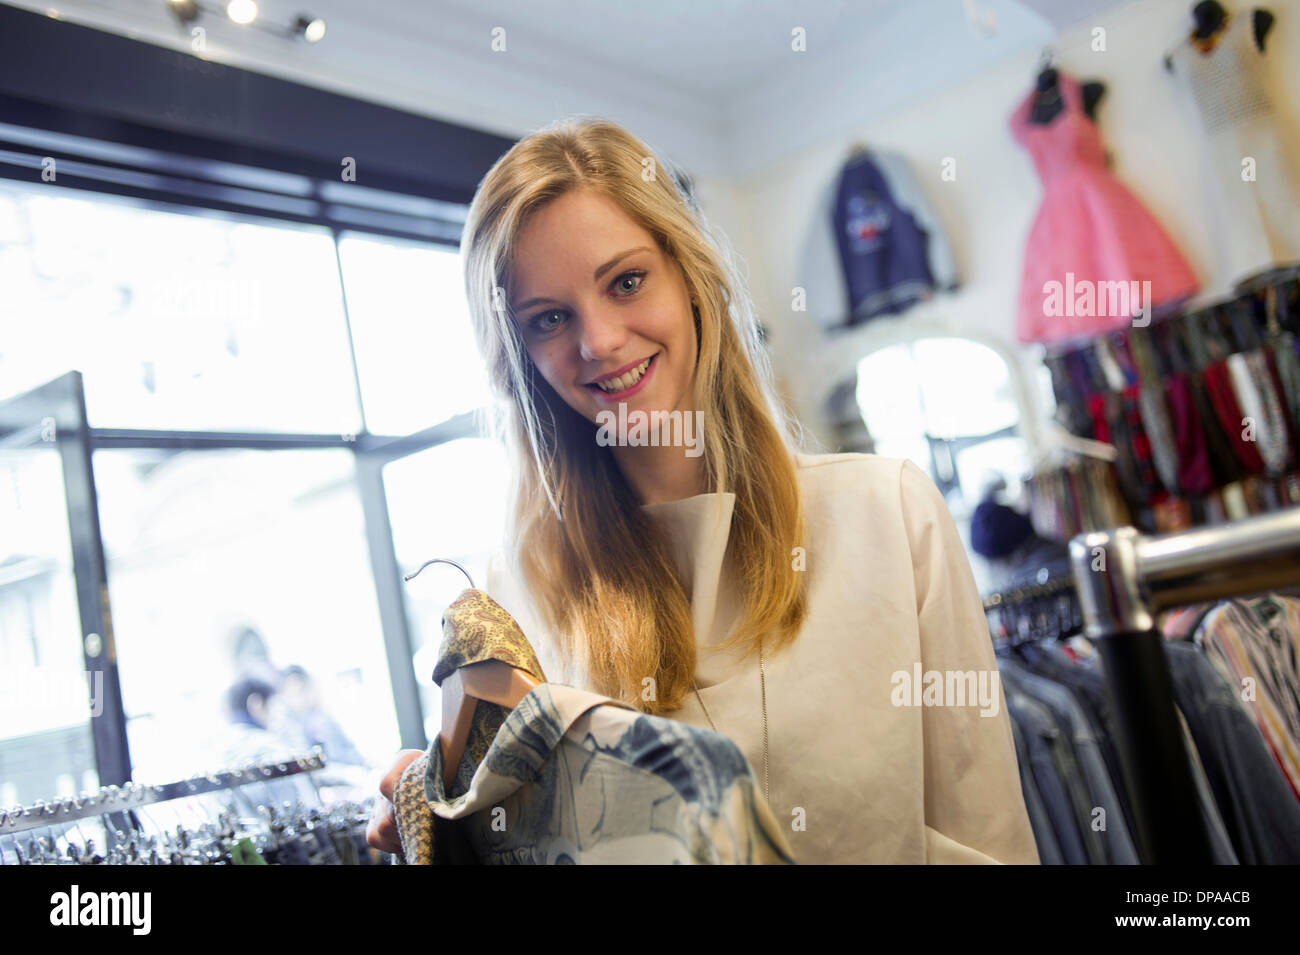 Woman holding top garment and scarf - Stock Image